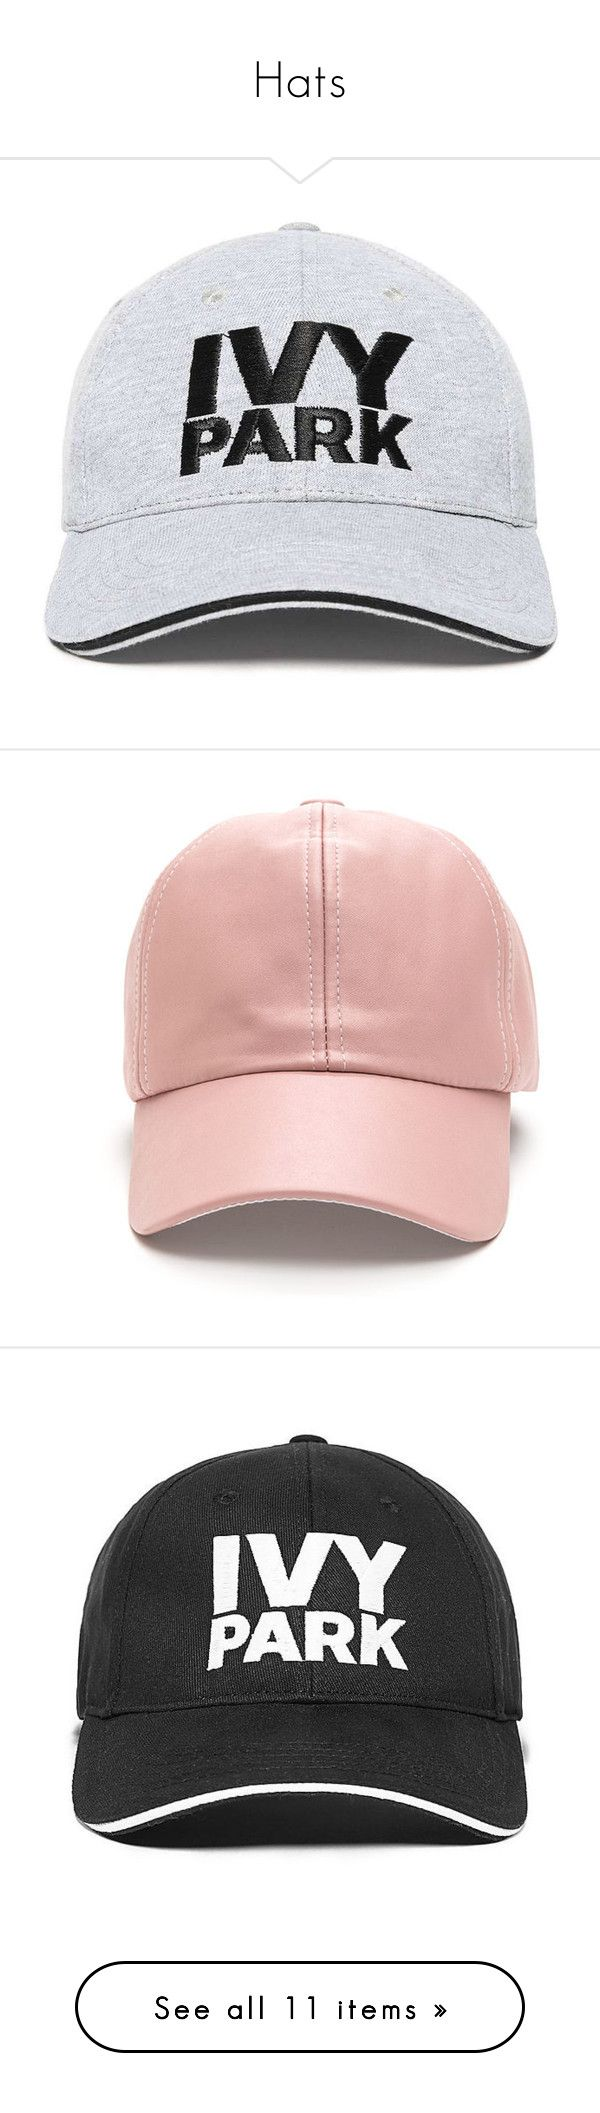 """""""Hats"""" by mikaria-fashion ❤ liked on Polyvore featuring accessories, hats, headwear, ivy park, embroidered hats, embroidered baseball hats, embroidered ball caps, sun visor hat, visor hats and head"""